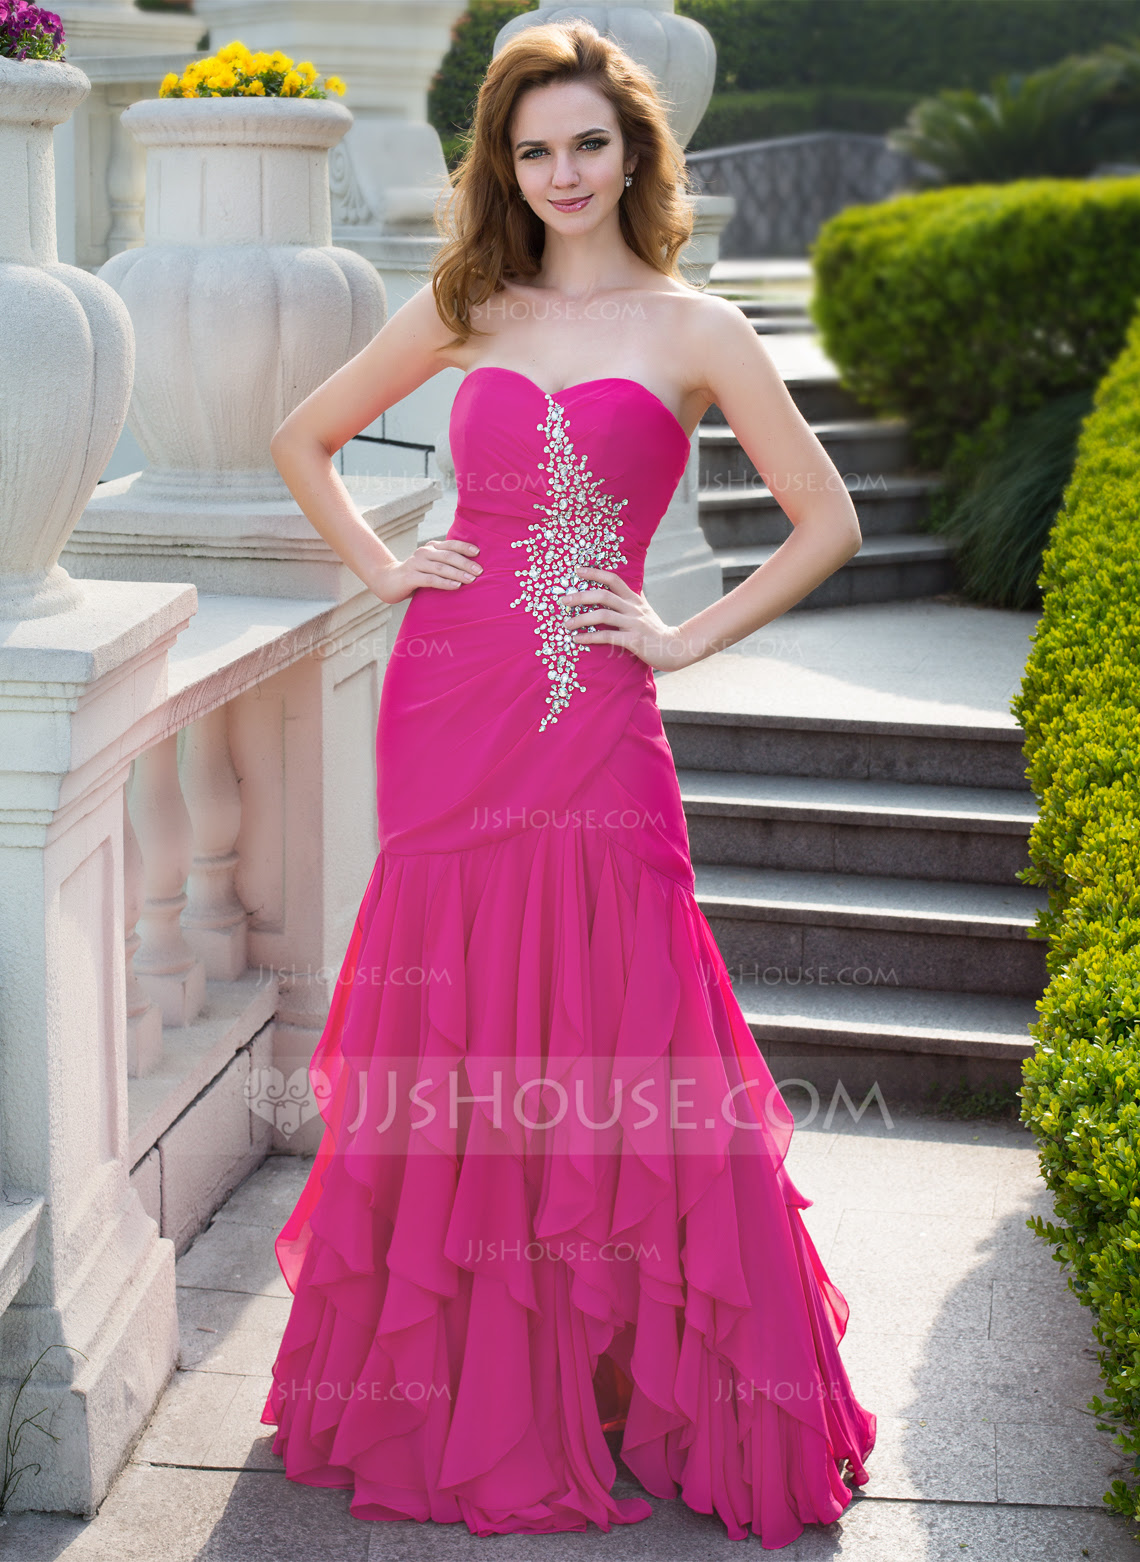 Prom Dress Lust List and 12 Amazing Prom Stores! - Creativity and ...